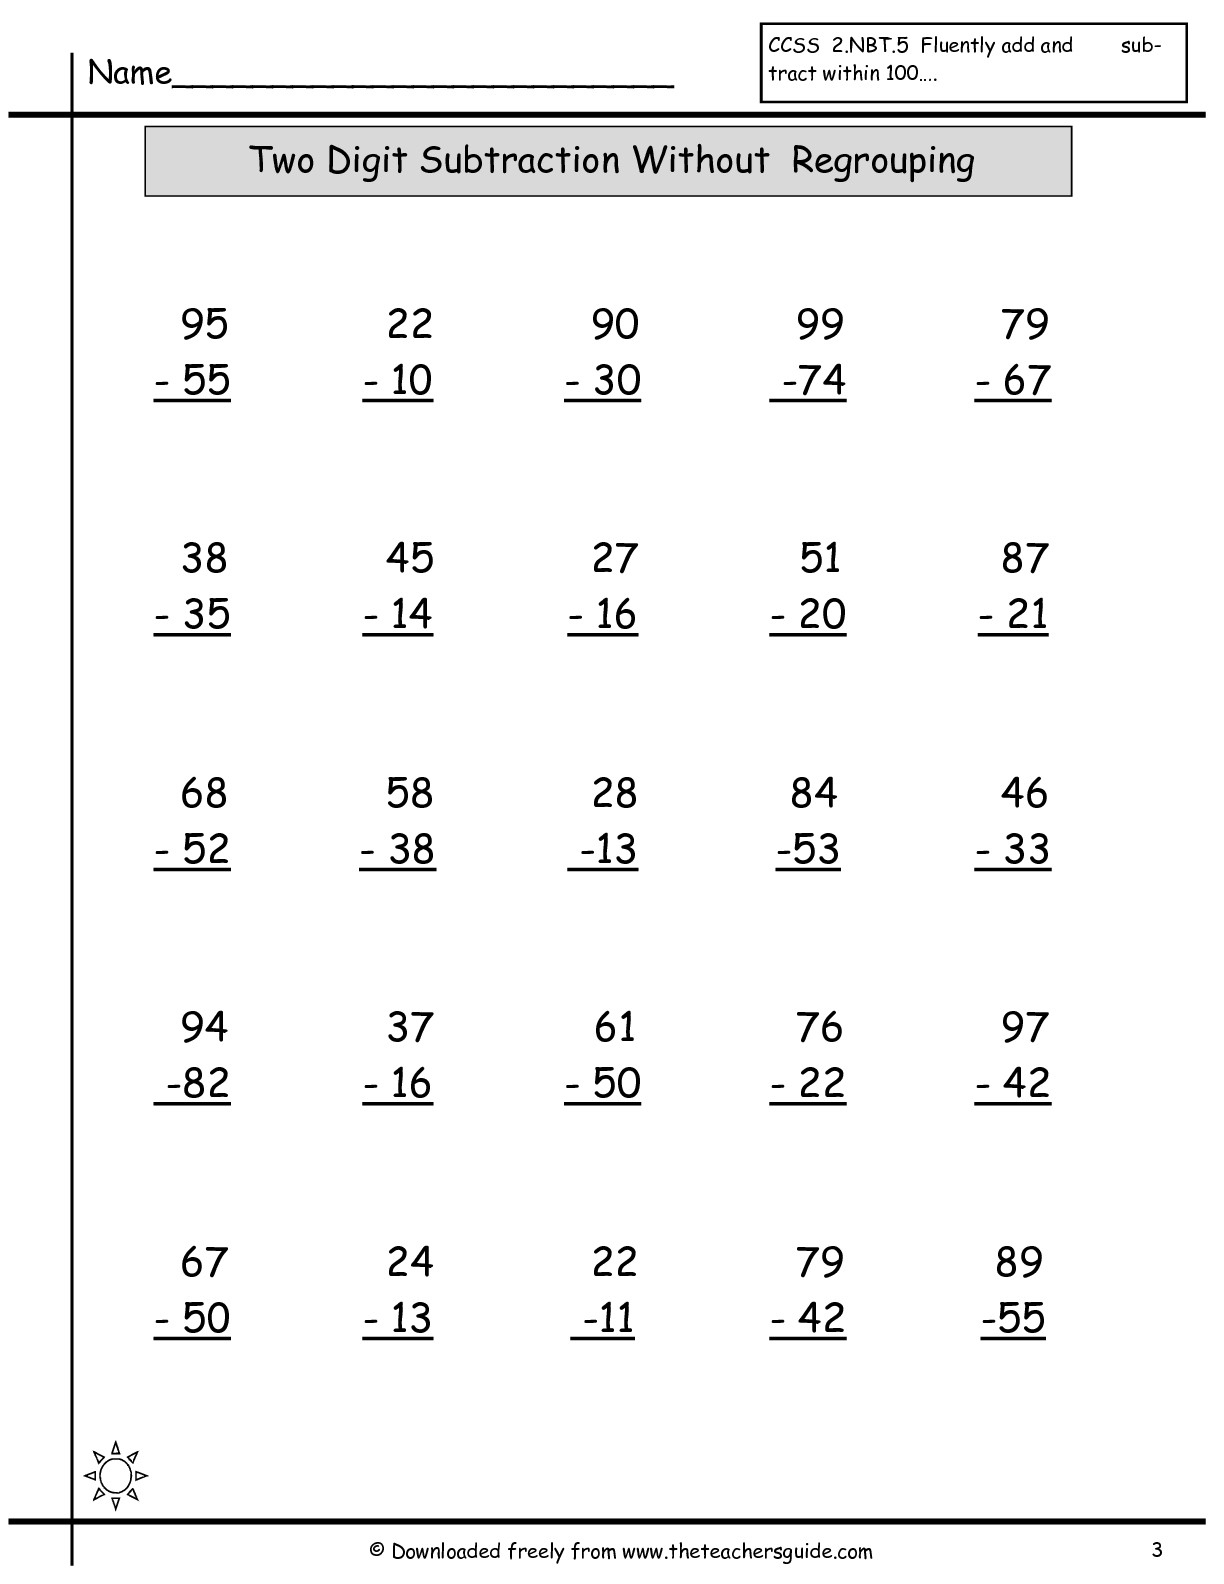 Free Math Printouts From The Teacher's Guide - Free Printable Addition And Subtraction Worksheets